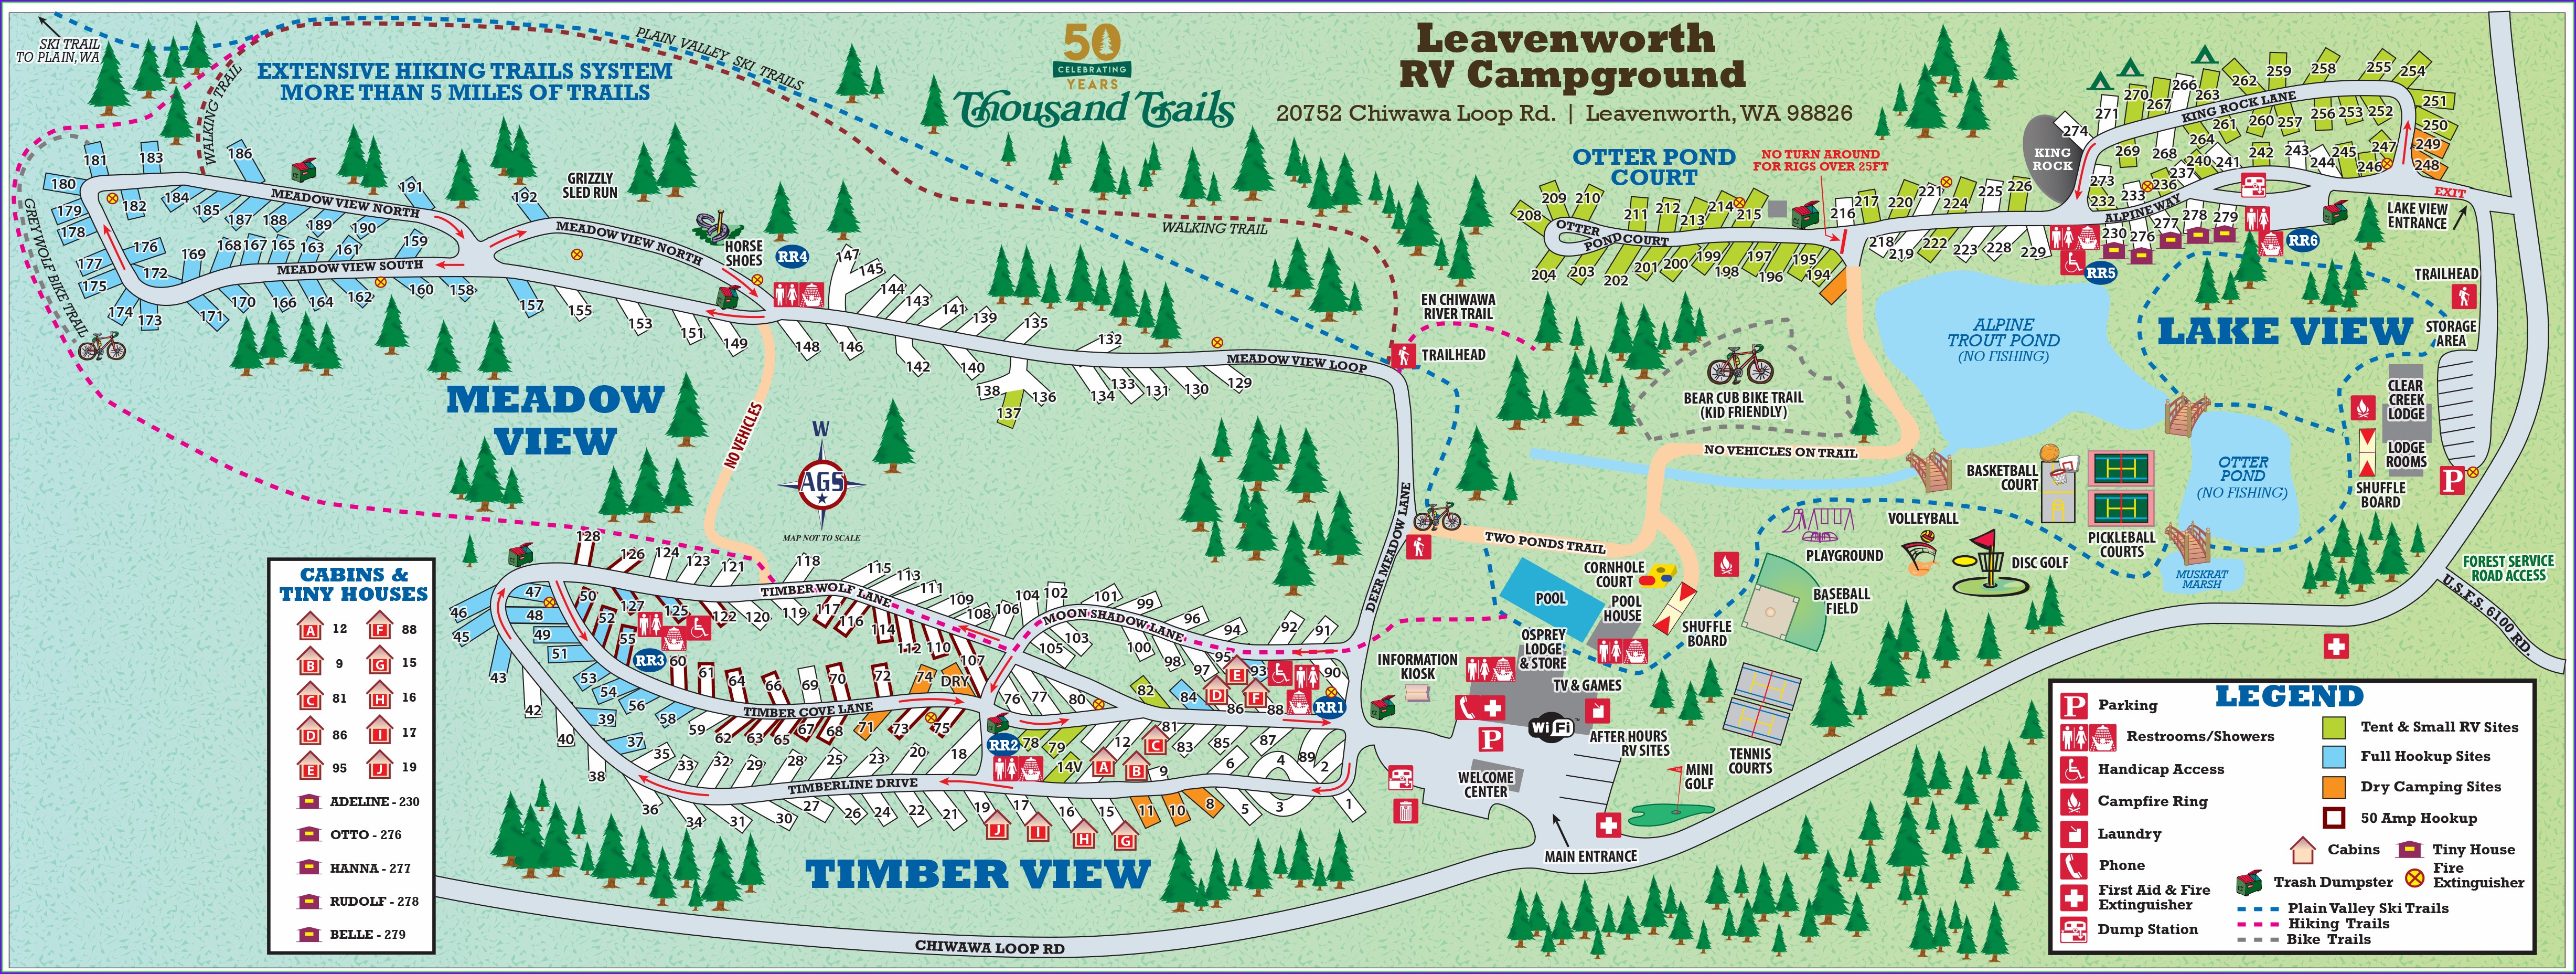 Thousand Trails Leavenworth Campground Map